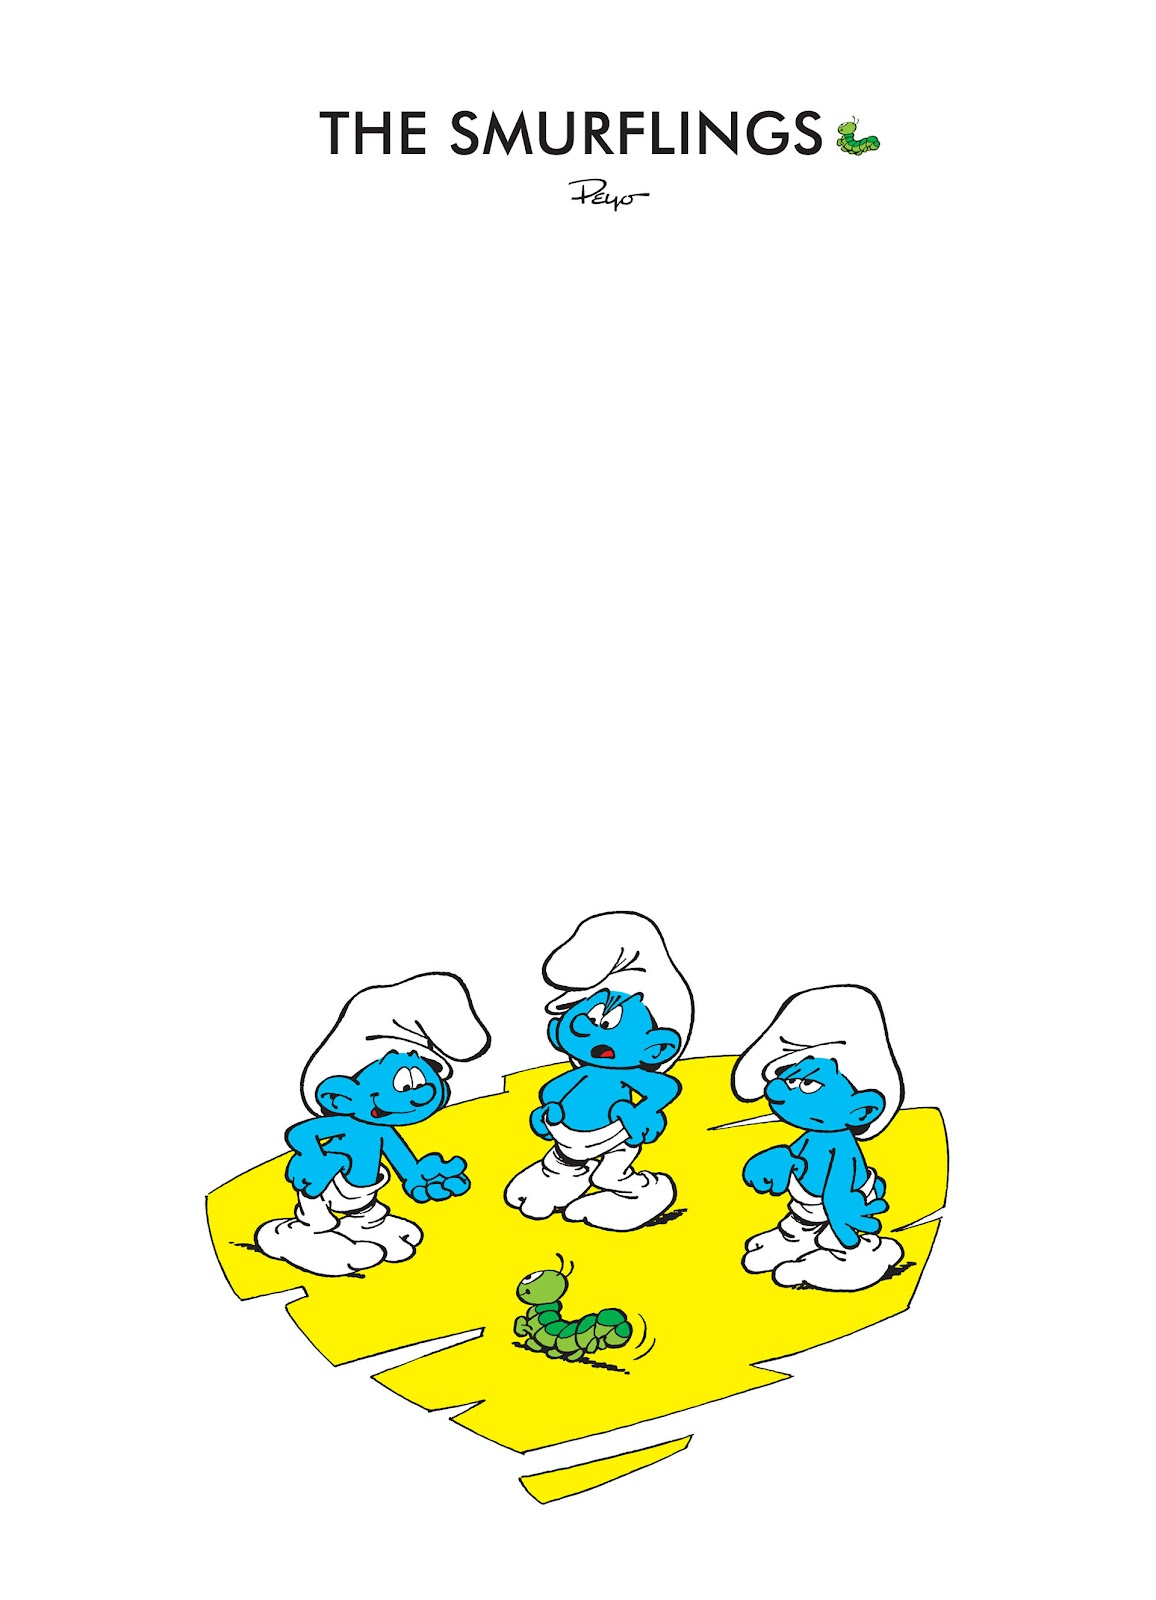 Read online The Smurfs comic -  Issue #15 - 2